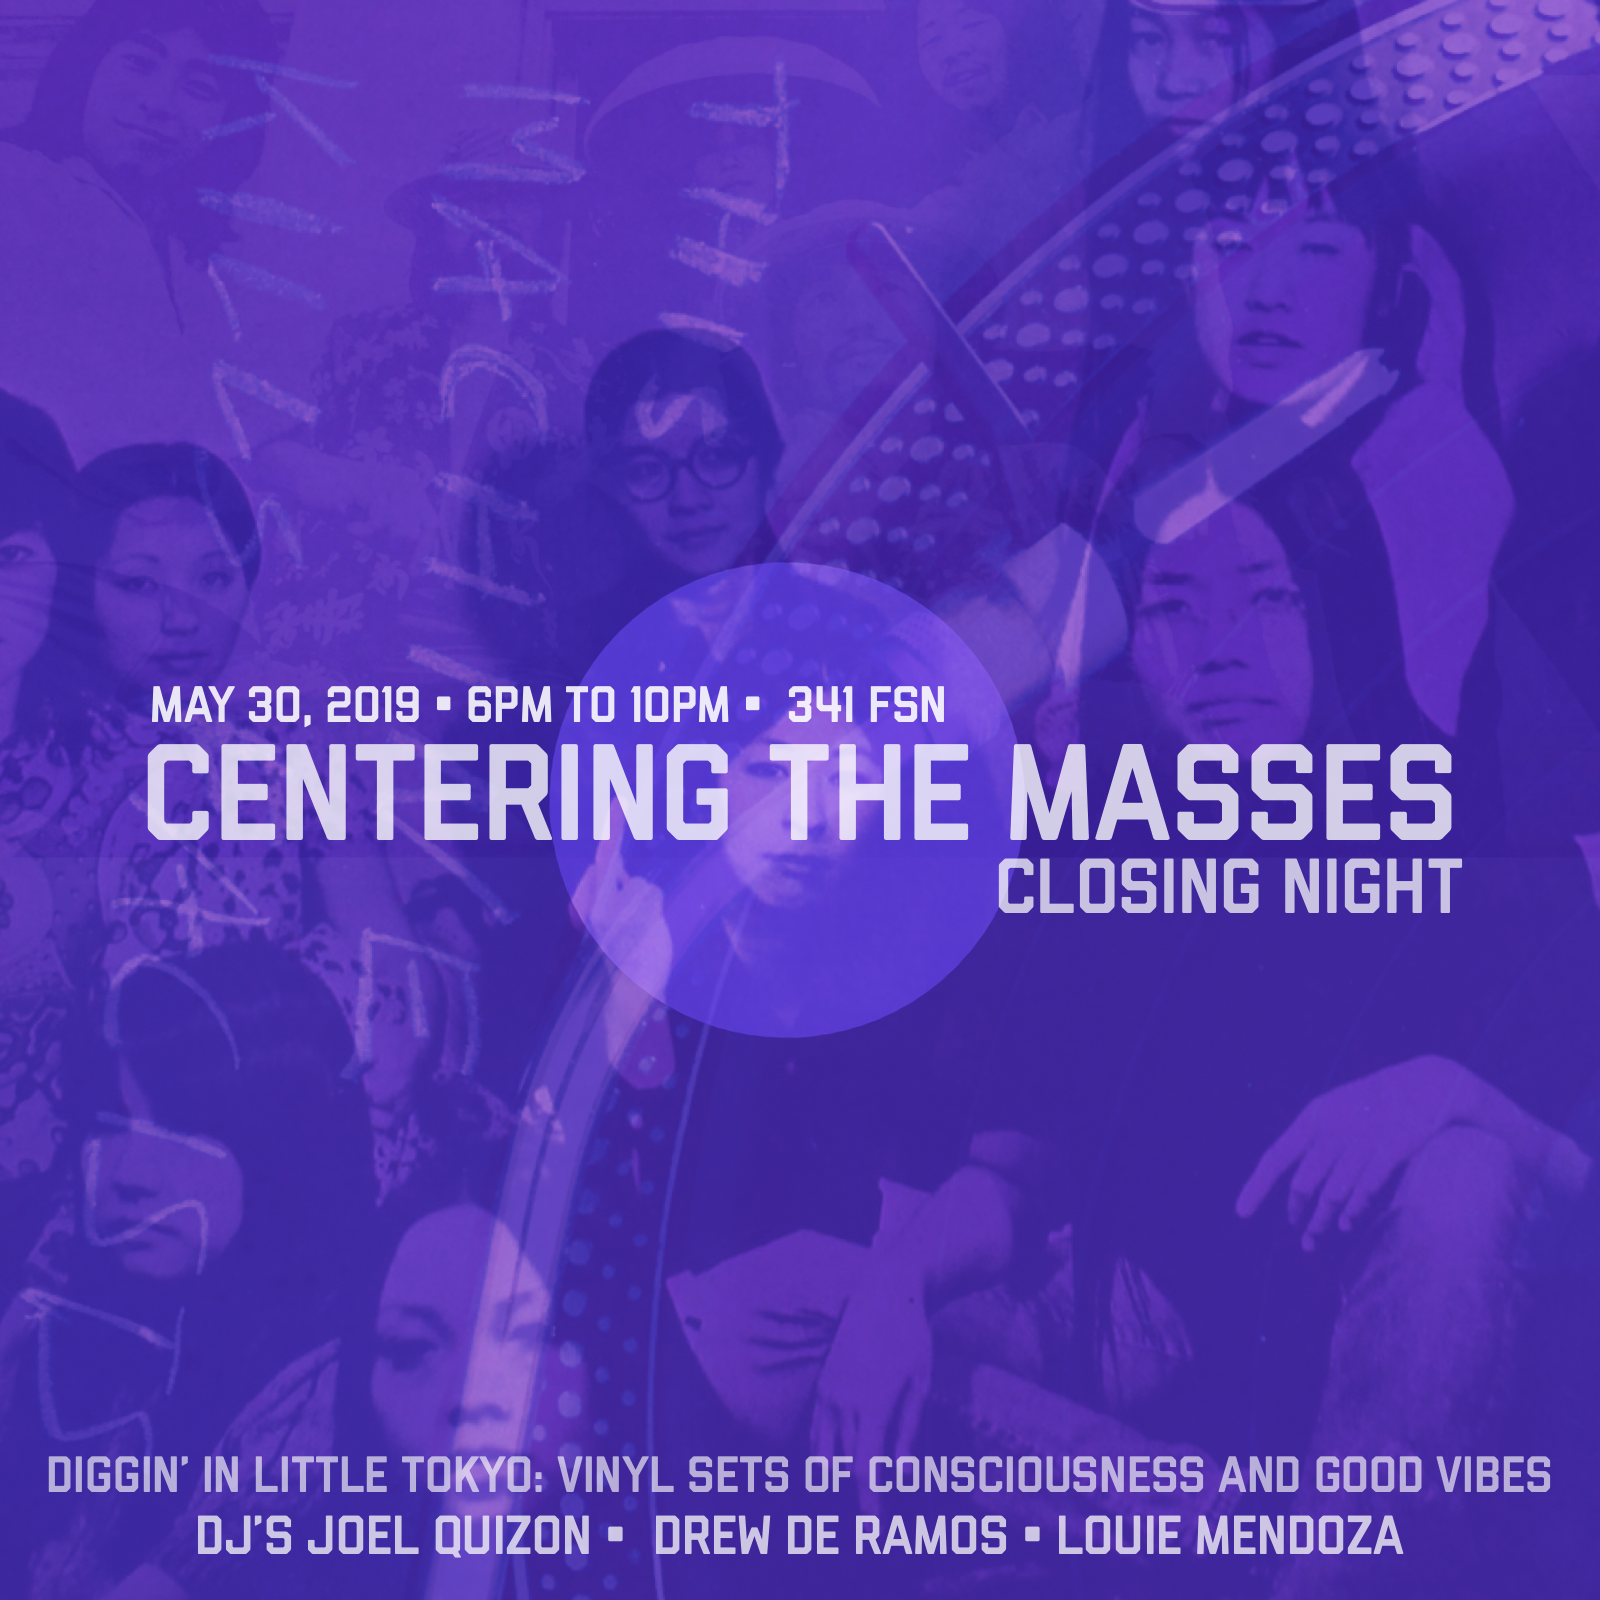 """CENTERING THE MASSES Closing Night  Diggin' In Little Tokyo Thursday, May 30, 2019 